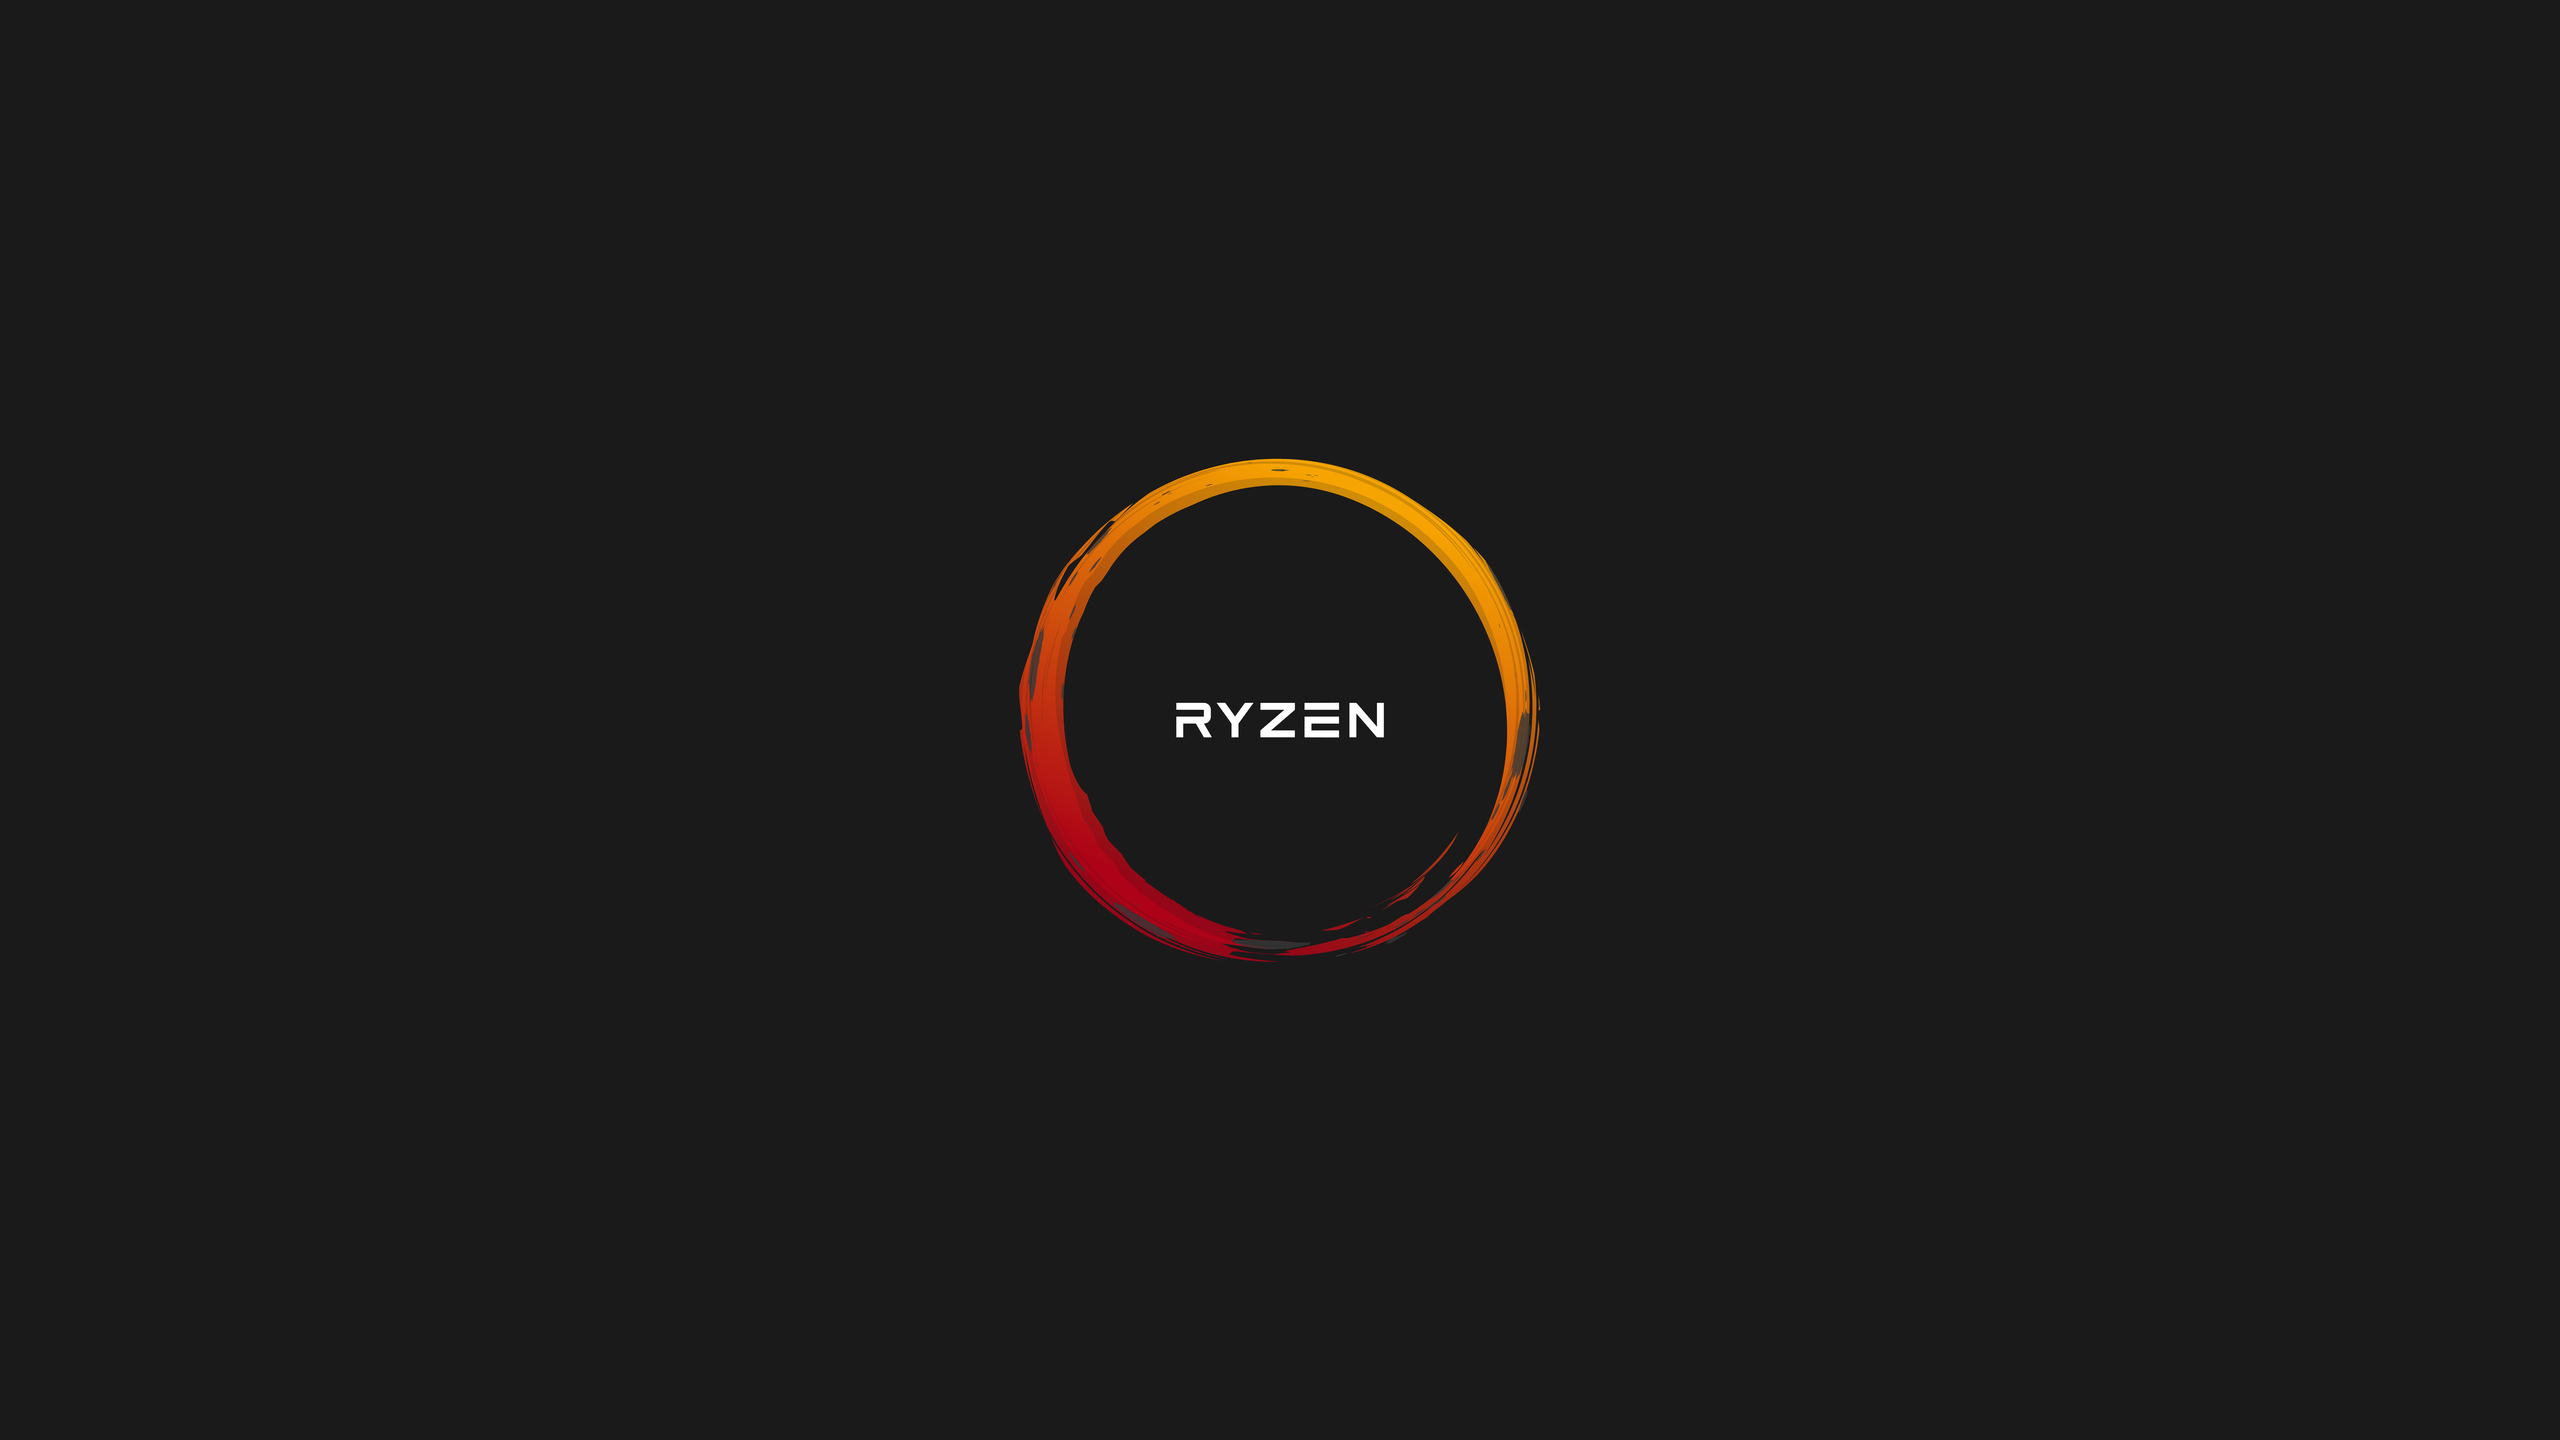 2560x1440 Amd Ryzen 8k 1440p Resolution Hd 4k Wallpapers